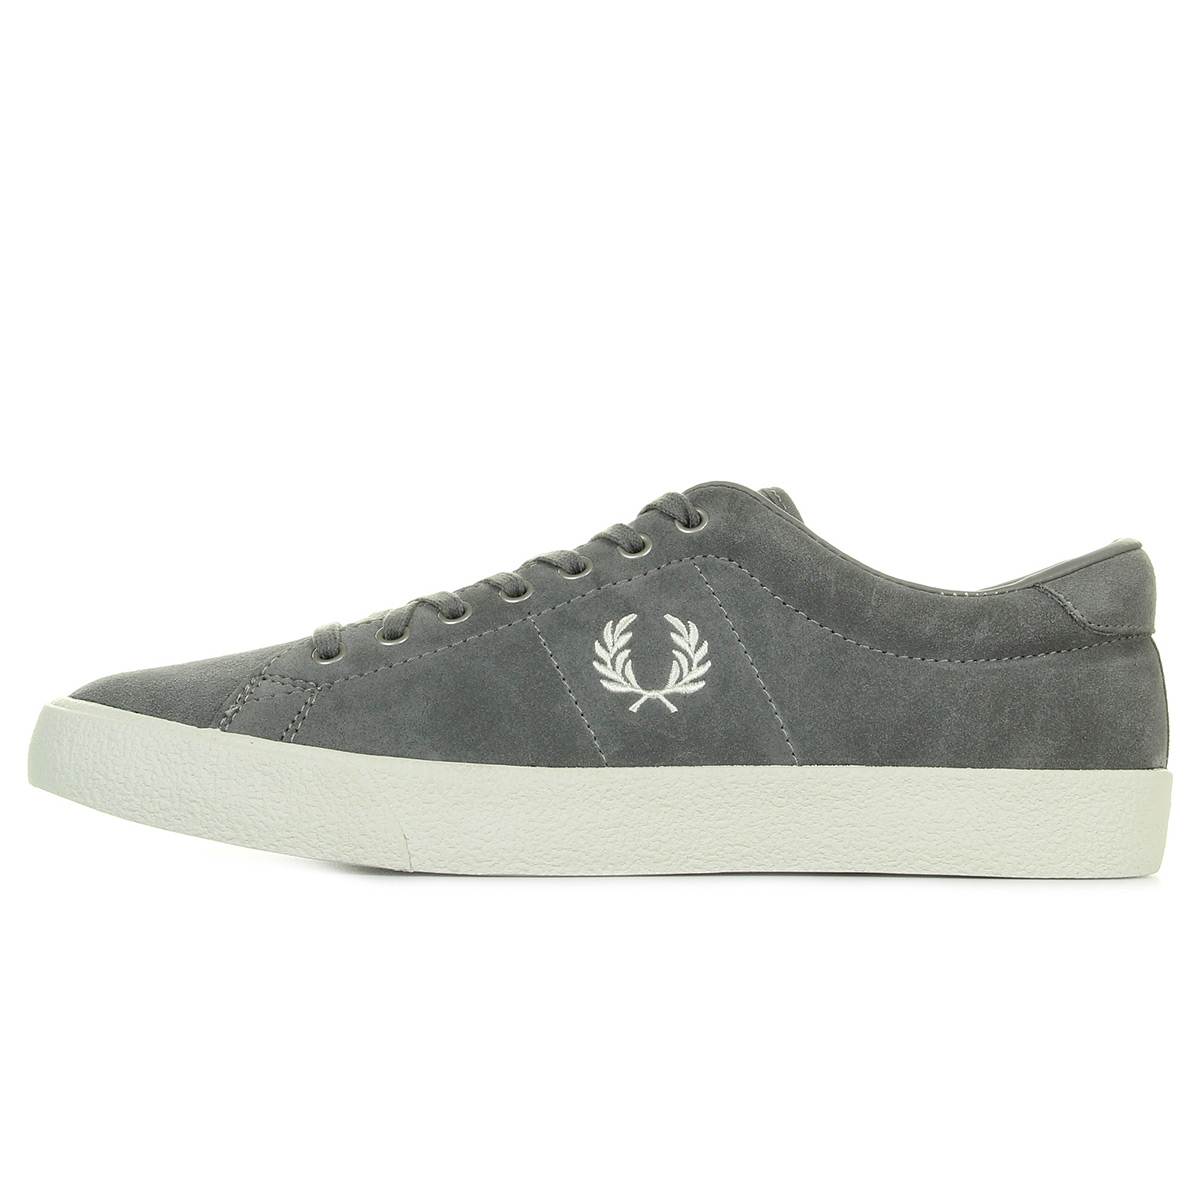 Baskets Fred Perry Underspin Suede Falcon Grey White fXX8d2u